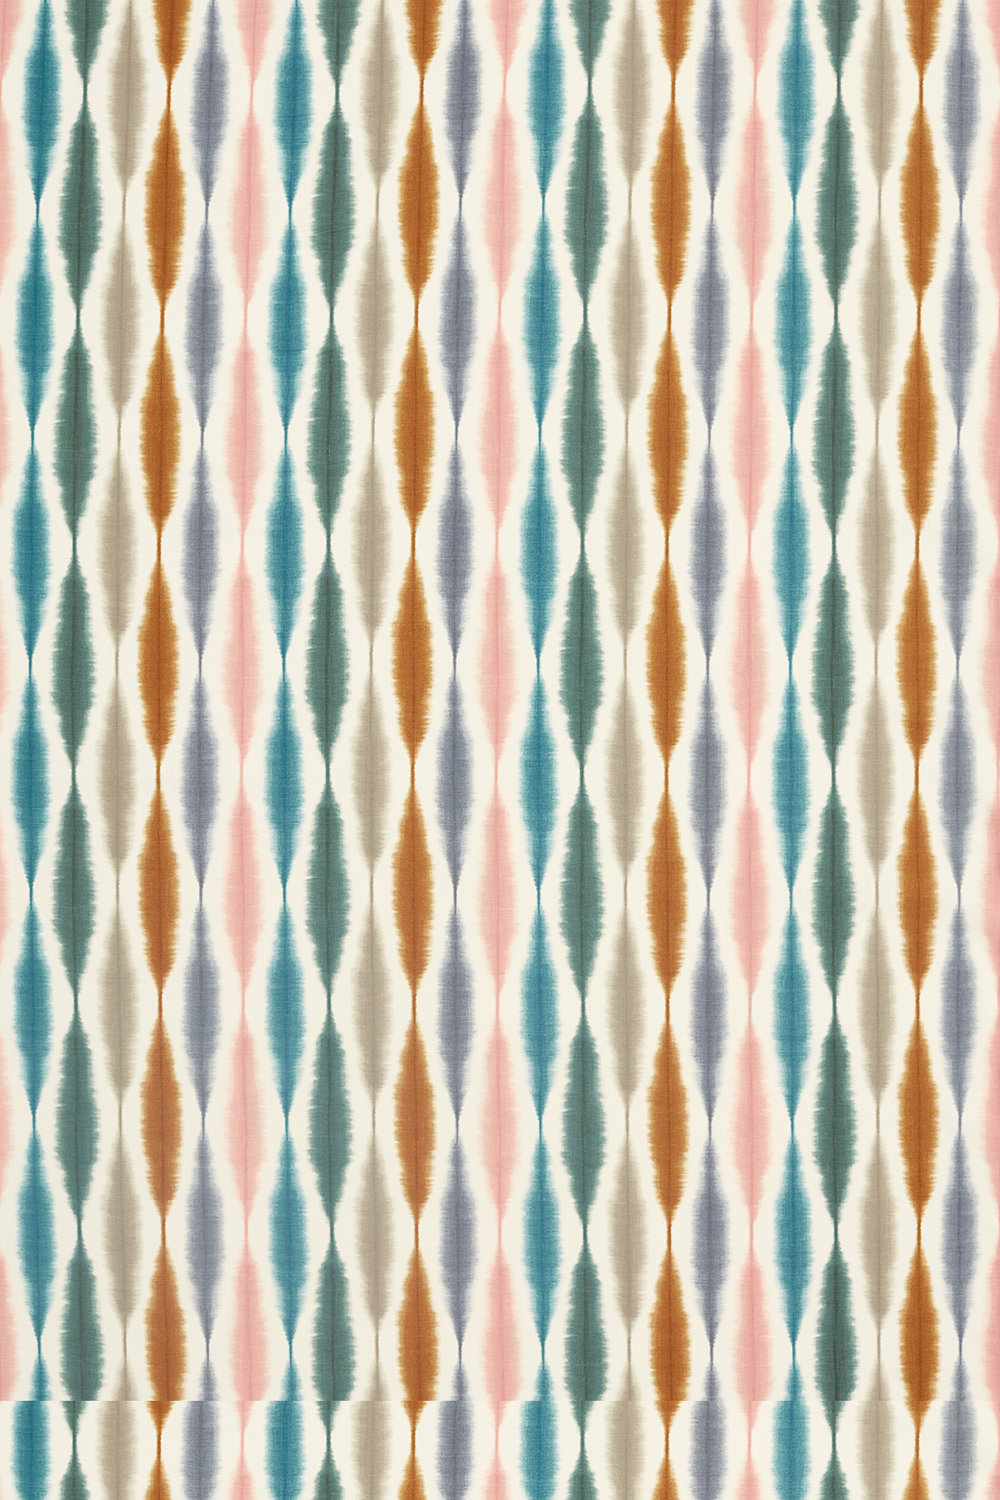 Usuko Fabric - Olive/ Ginger / Teal - by Scion